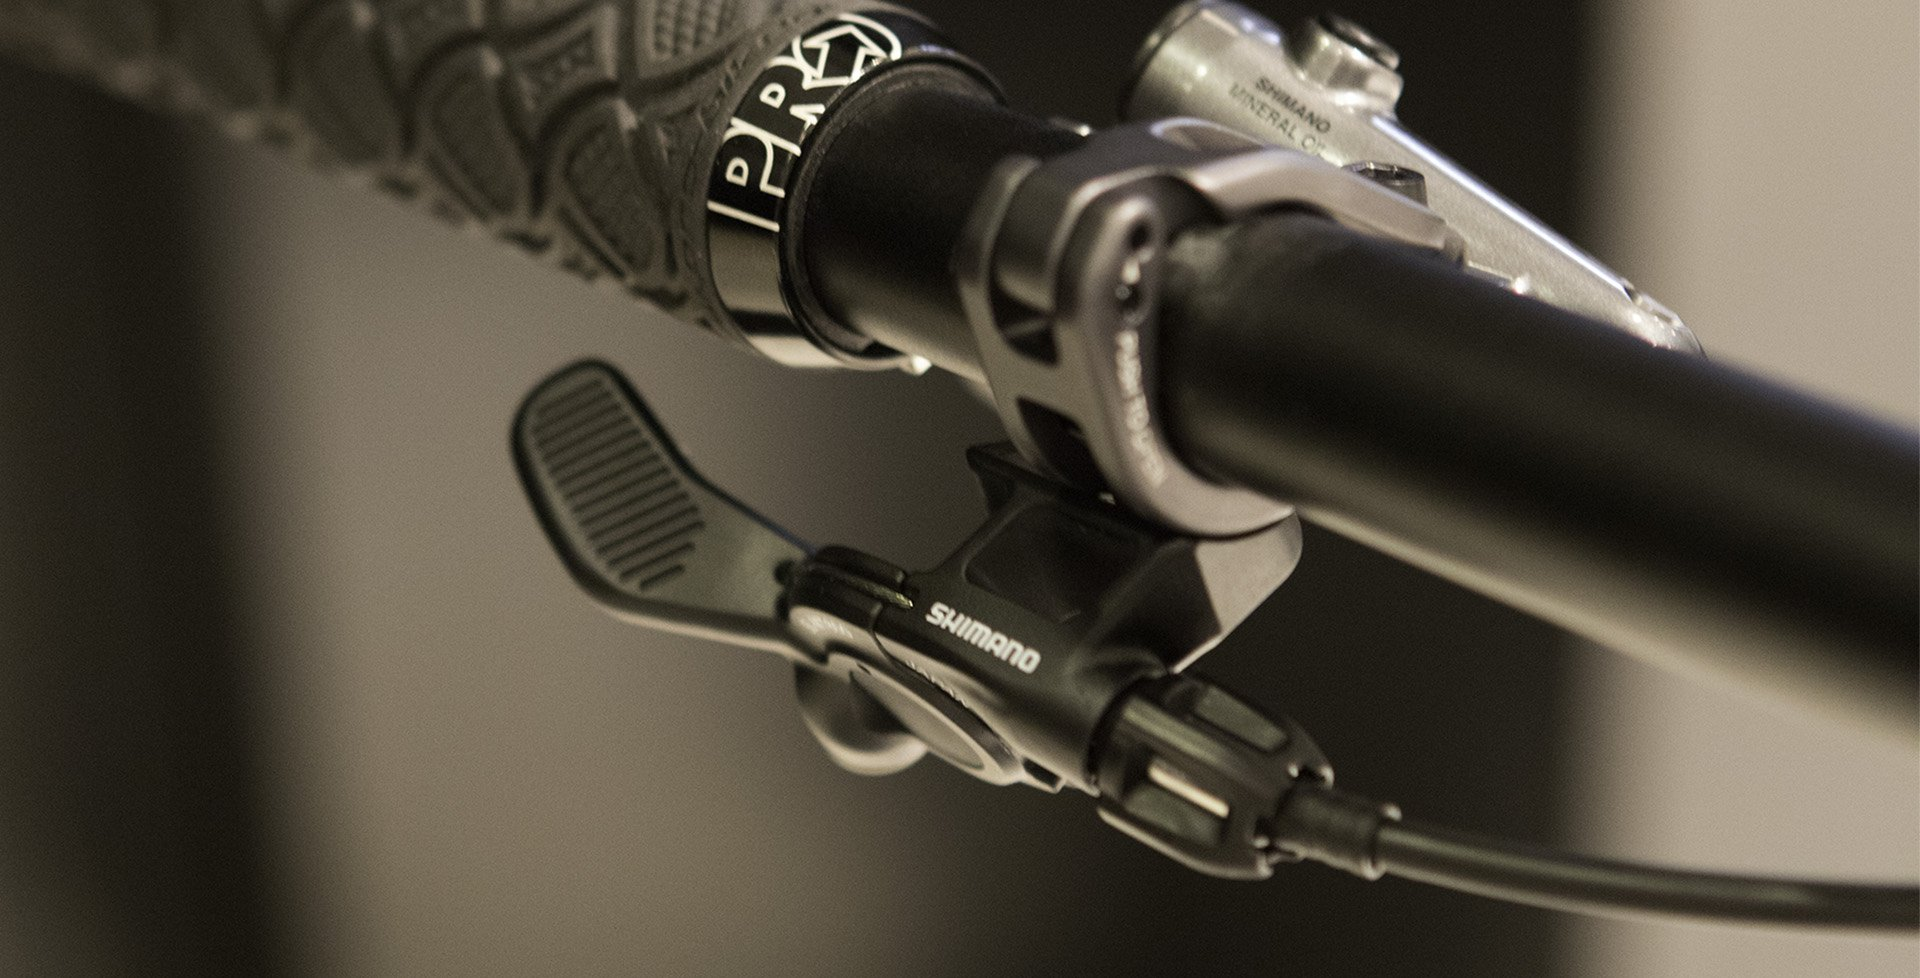 XTR Dropper Remote mounted